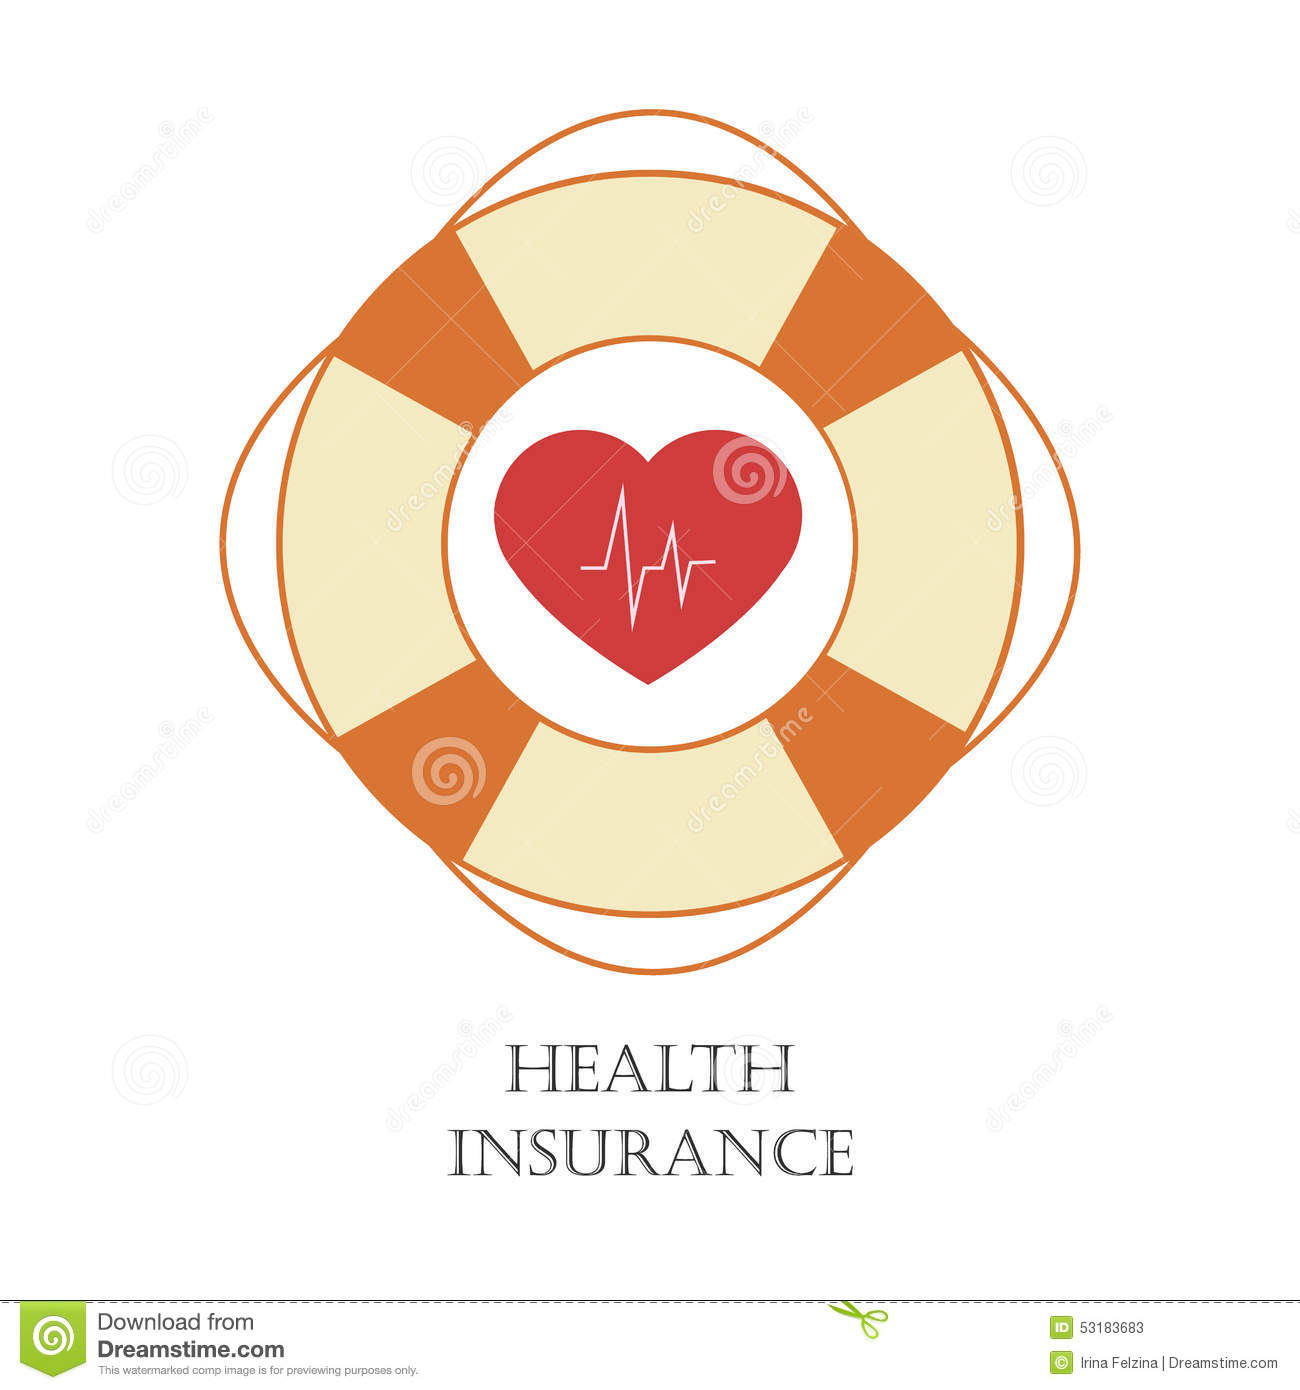 Health Insurance Sign Stock Vector - Image: 53183683